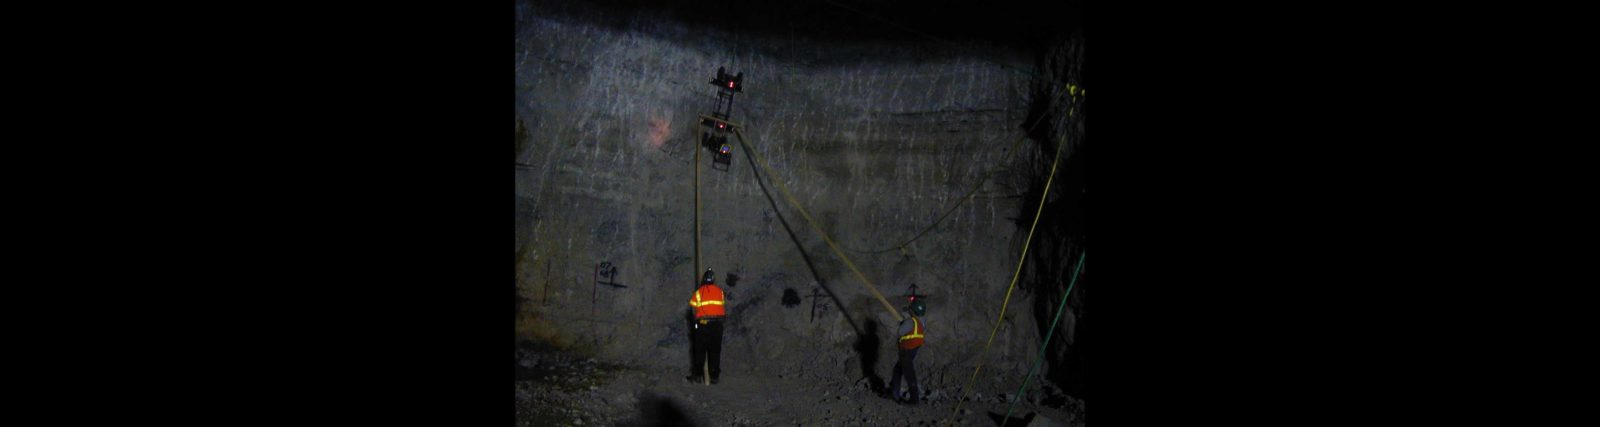 GPR for Voids and Fractures in a Mine Wall